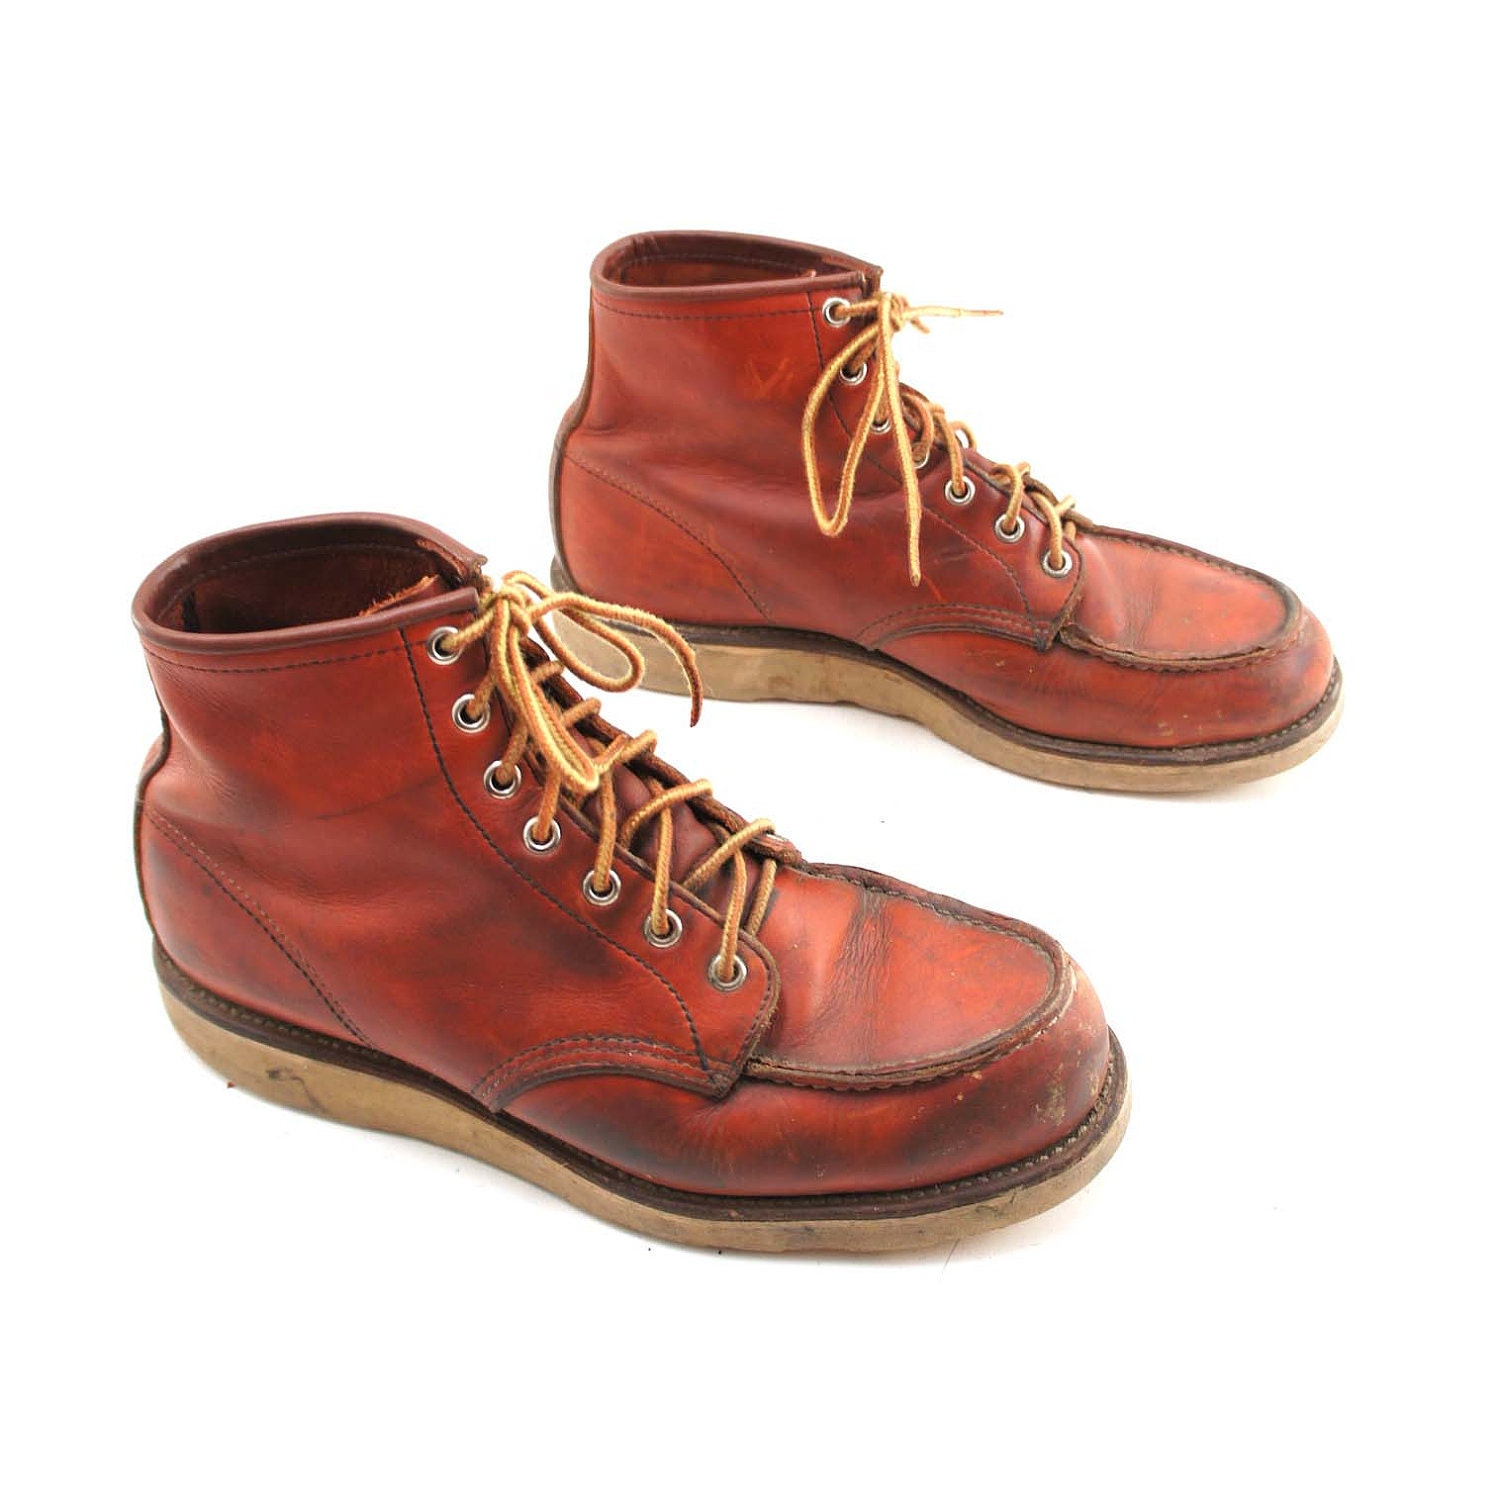 Red Wing Irish Setter: Men's Ankle Boots in Classic Rugged